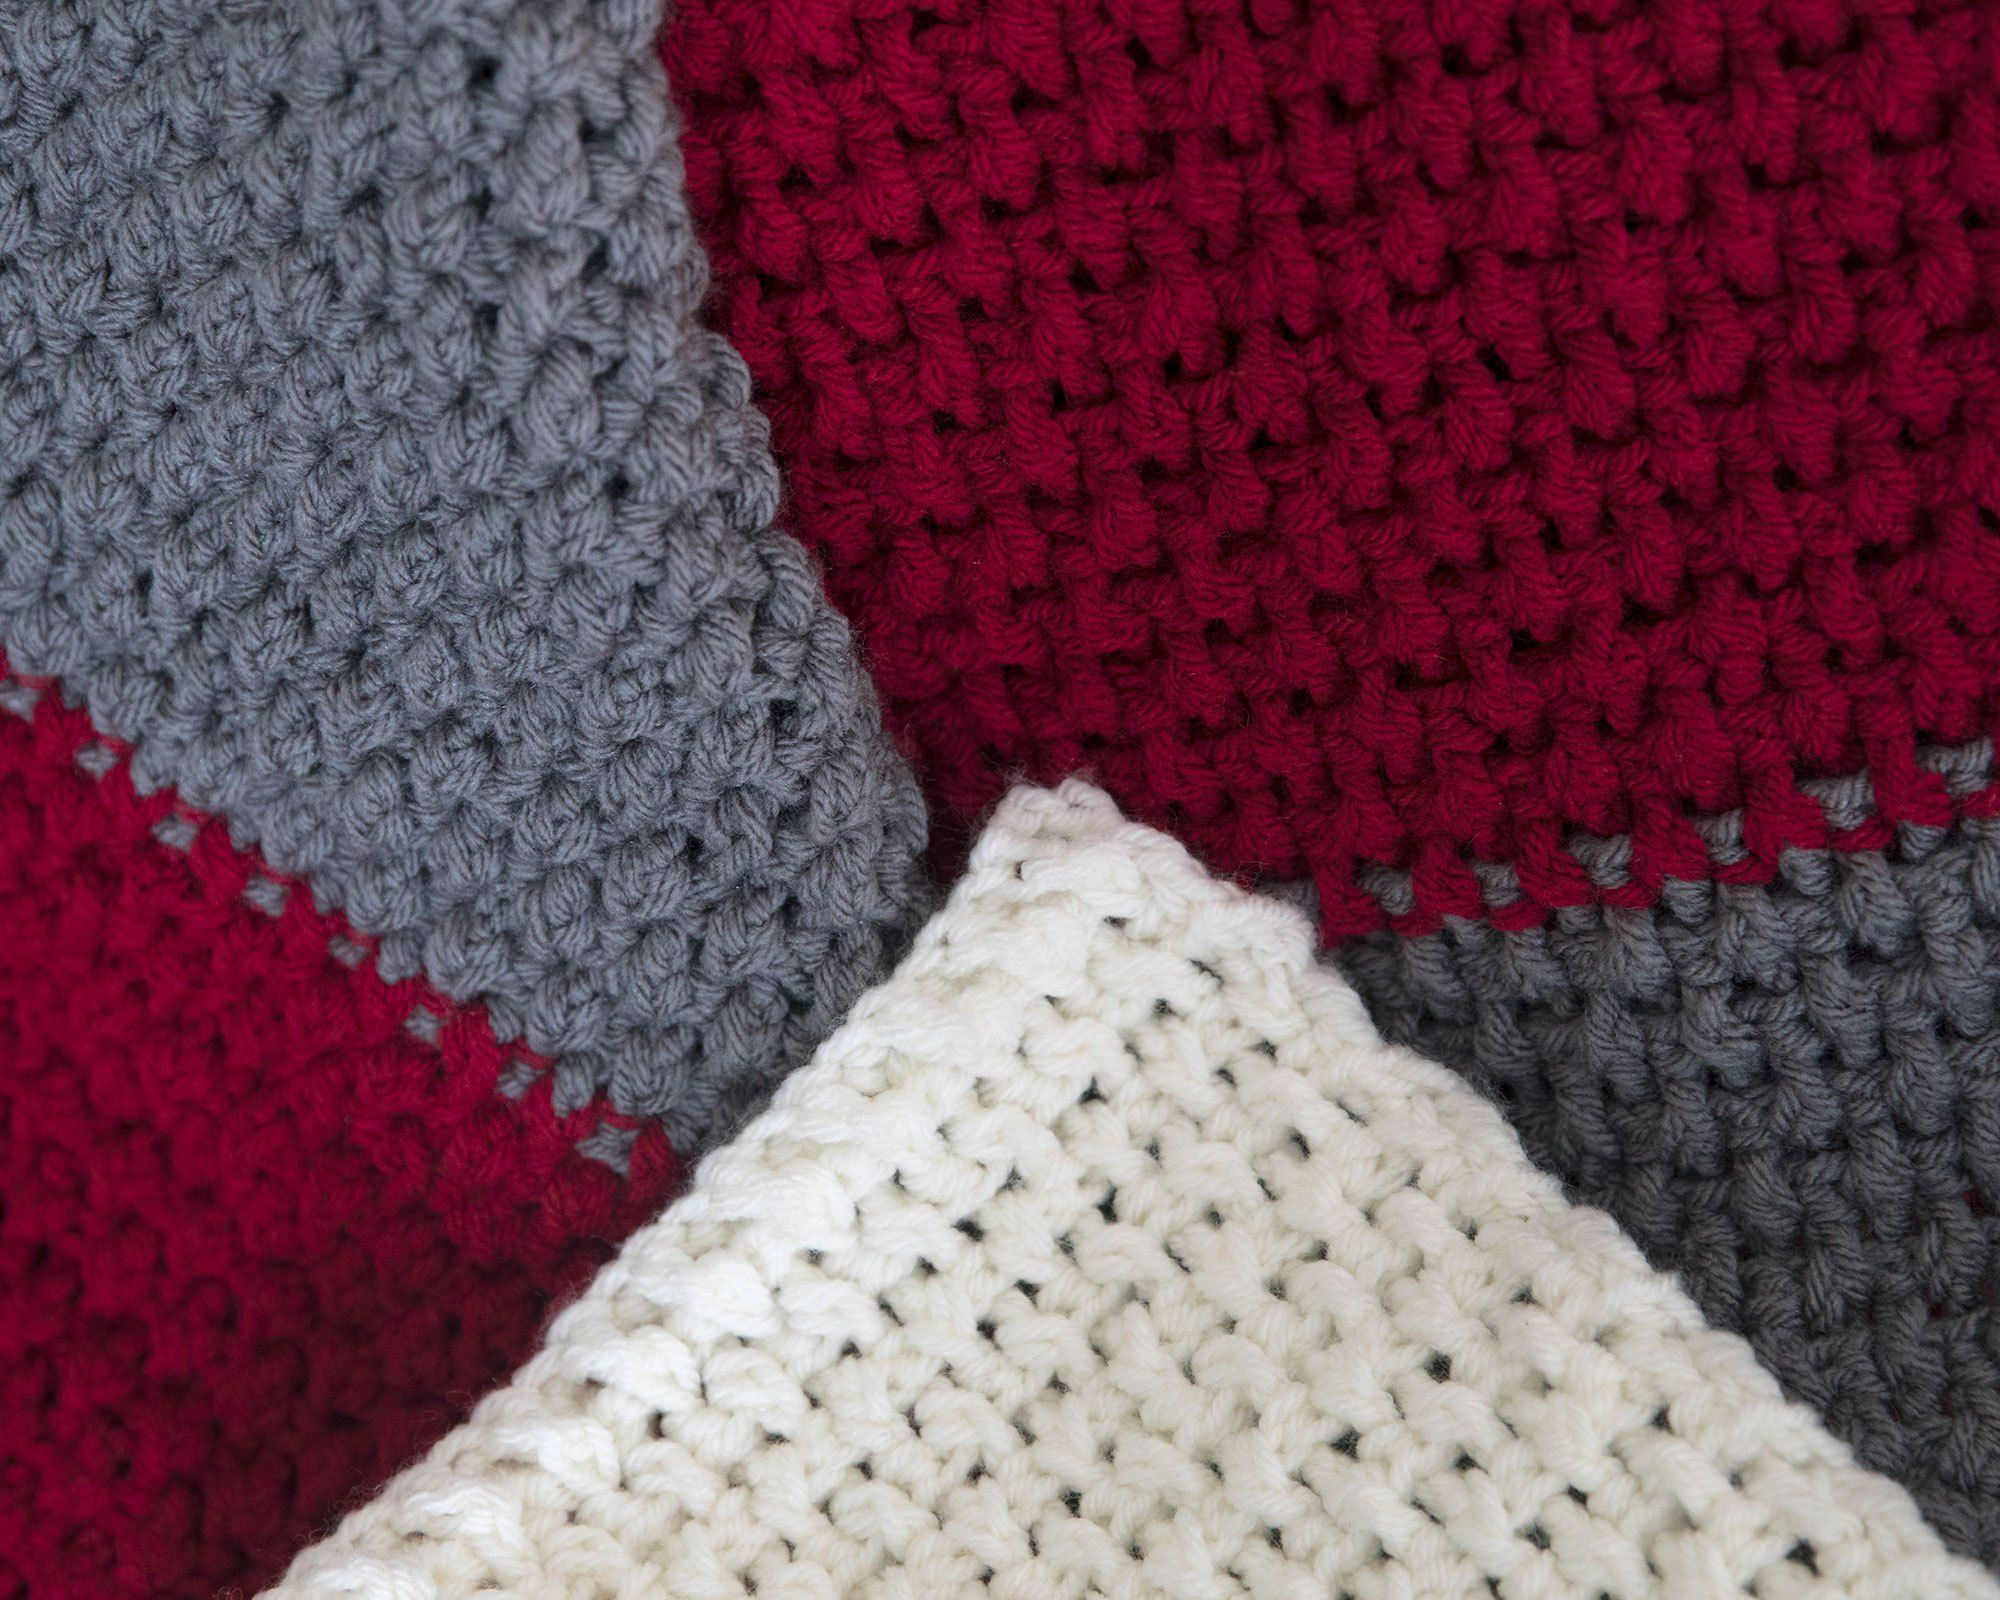 Free Crochet Blanket Pattern | Crocheting gift ideas | Pinterest